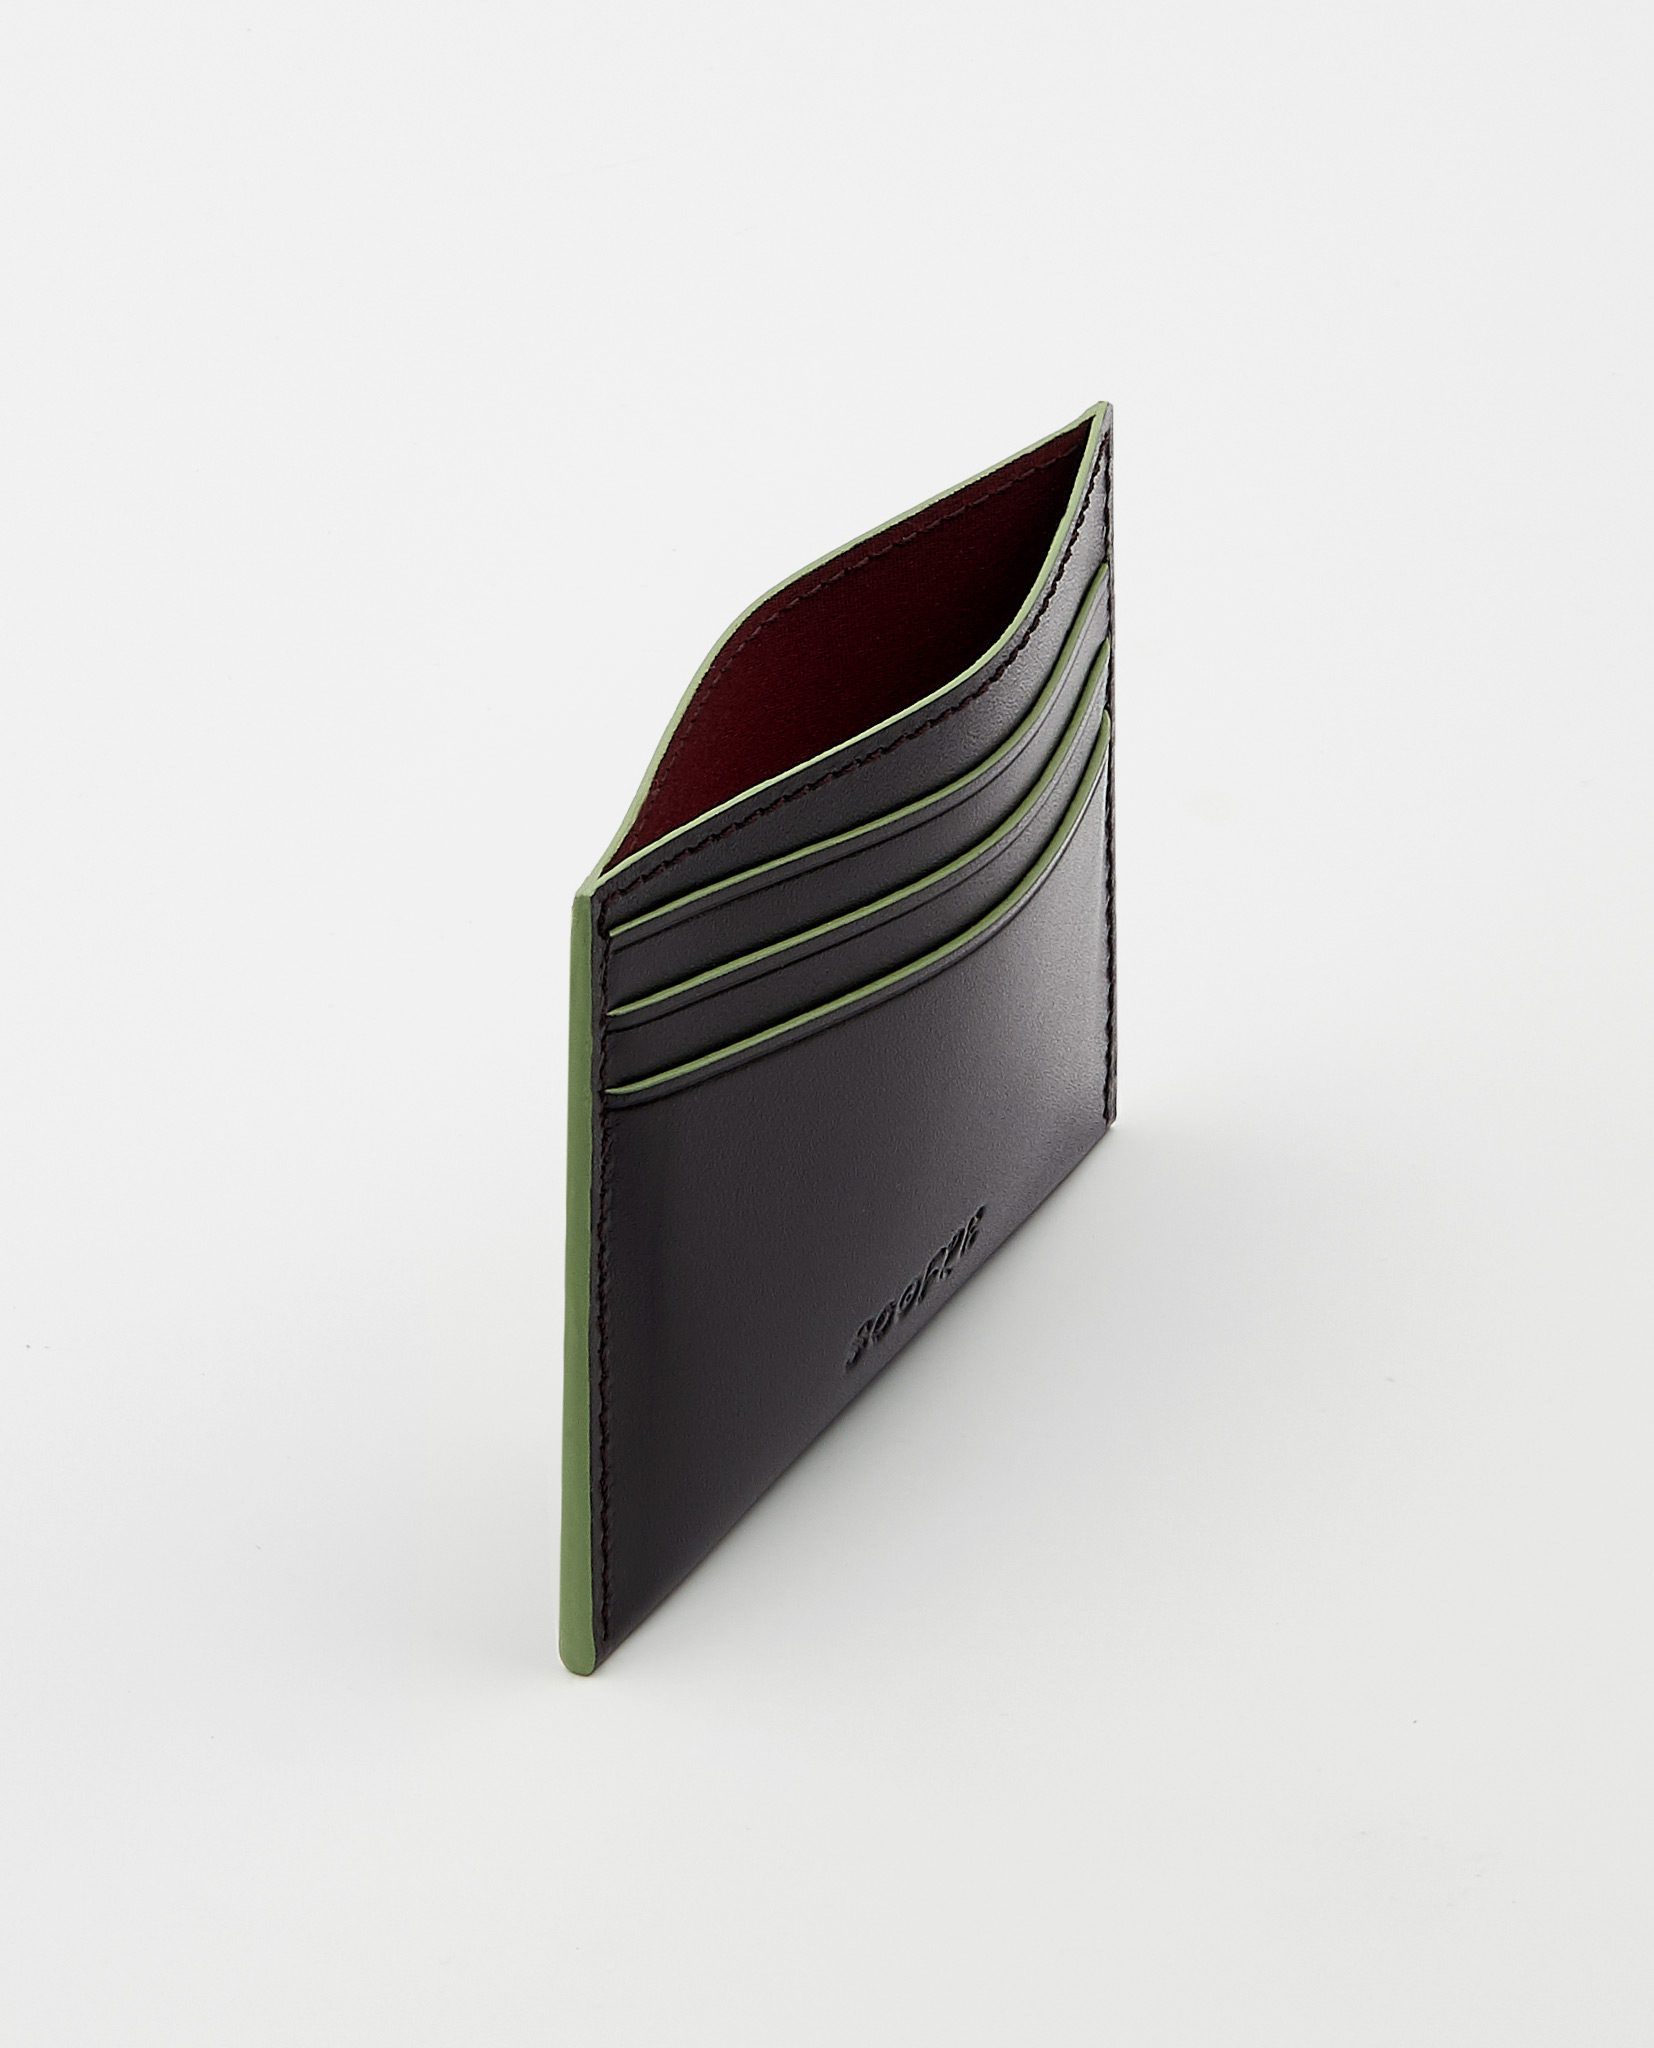 Soofre_Card-Holder_Burgundy-Khaki_2